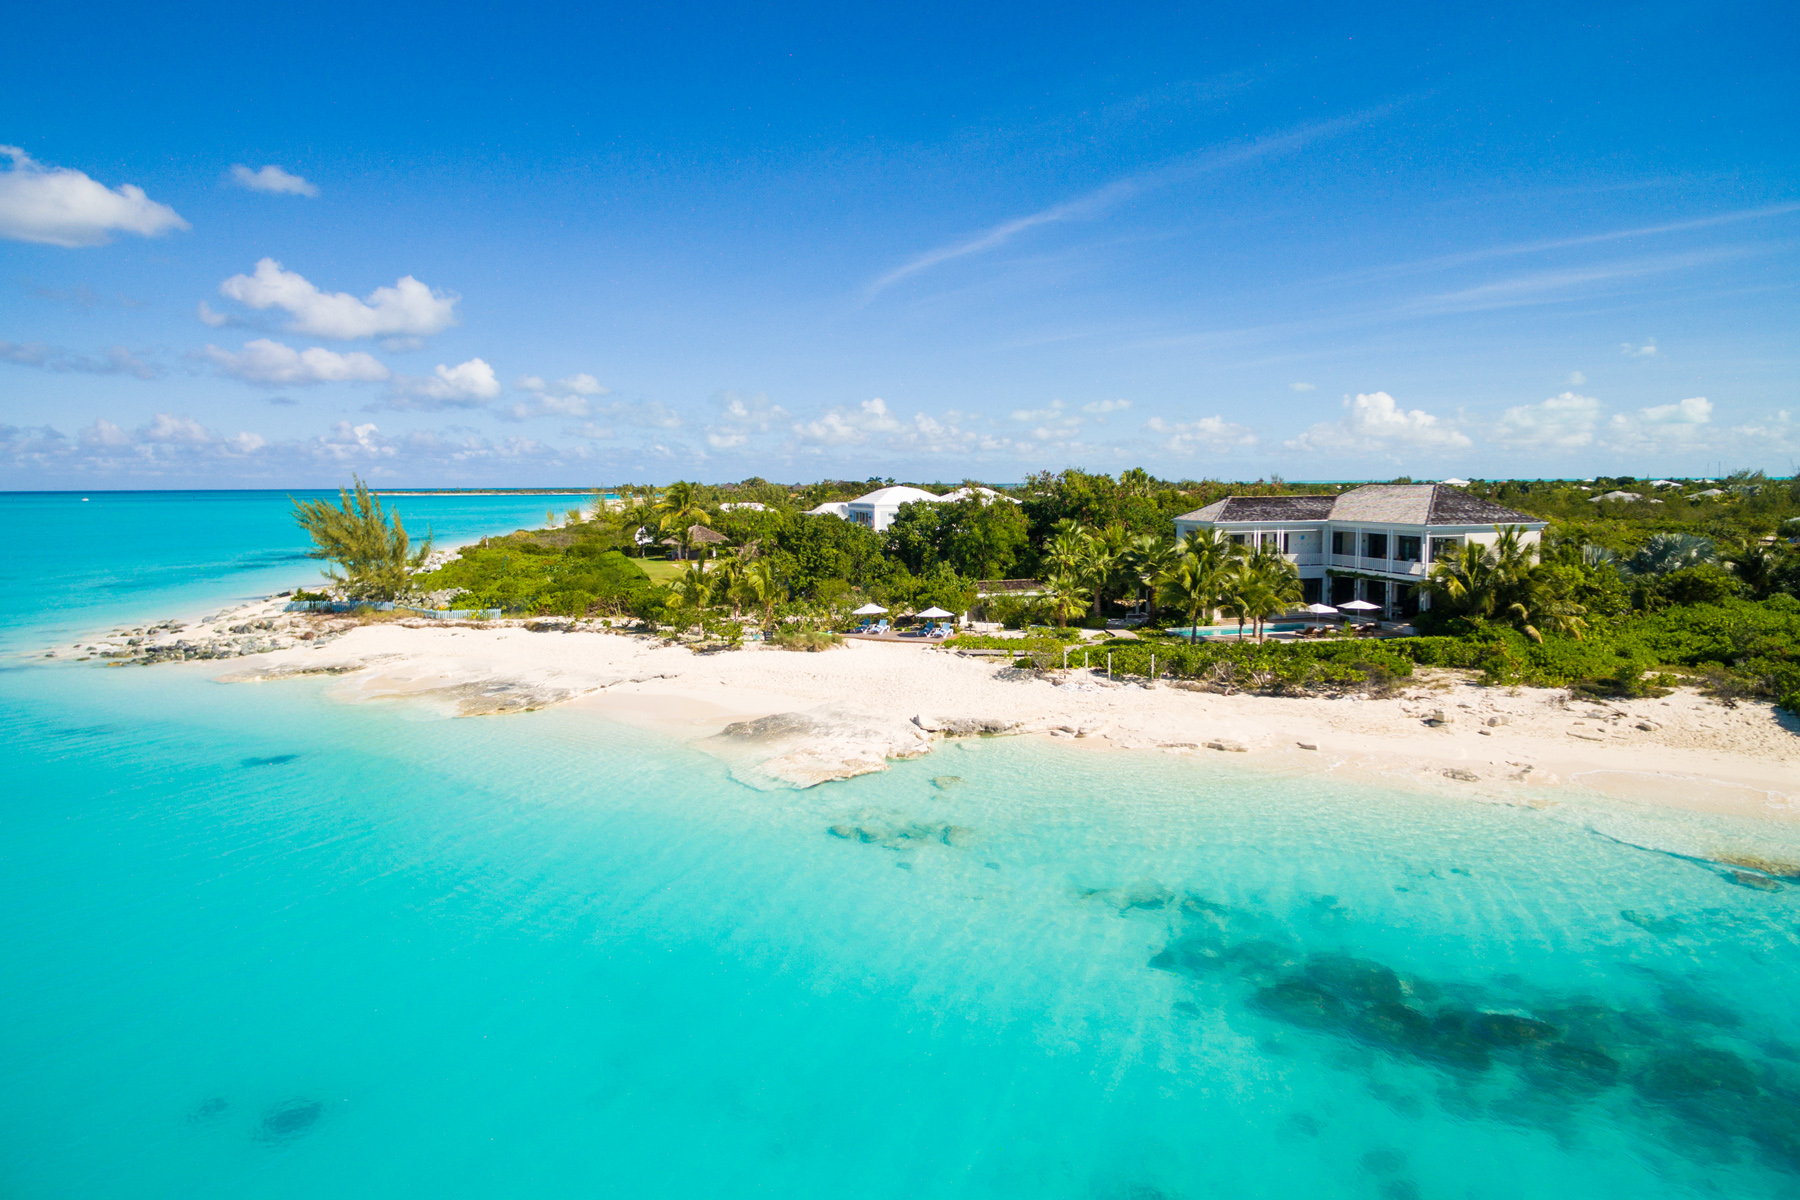 Single Family Home for Sale at Saving Grace - Luxurious Beachfront Villa Grace Bay, TCI BWI Turks And Caicos Islands